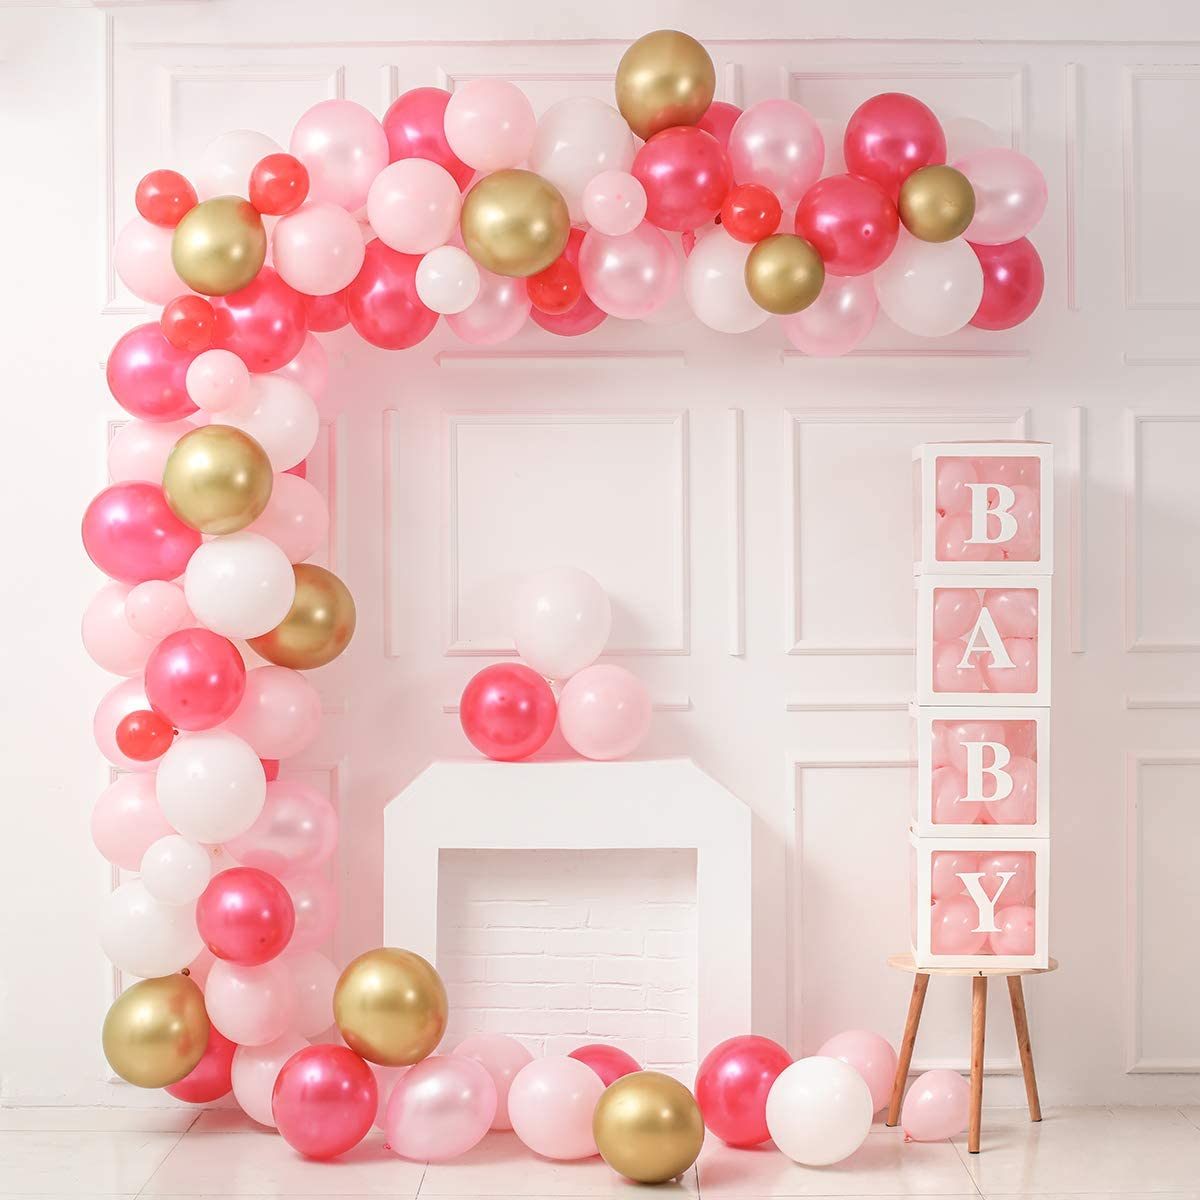 Balloon Arch Garland Kit+4 Individual Baby Letter Transparent Balloon Boxes for Baby Girl Shower Decoration, Include Rose Red Light Pink White Latex Balloons,Strip Tape,Balloon Pump, Dots